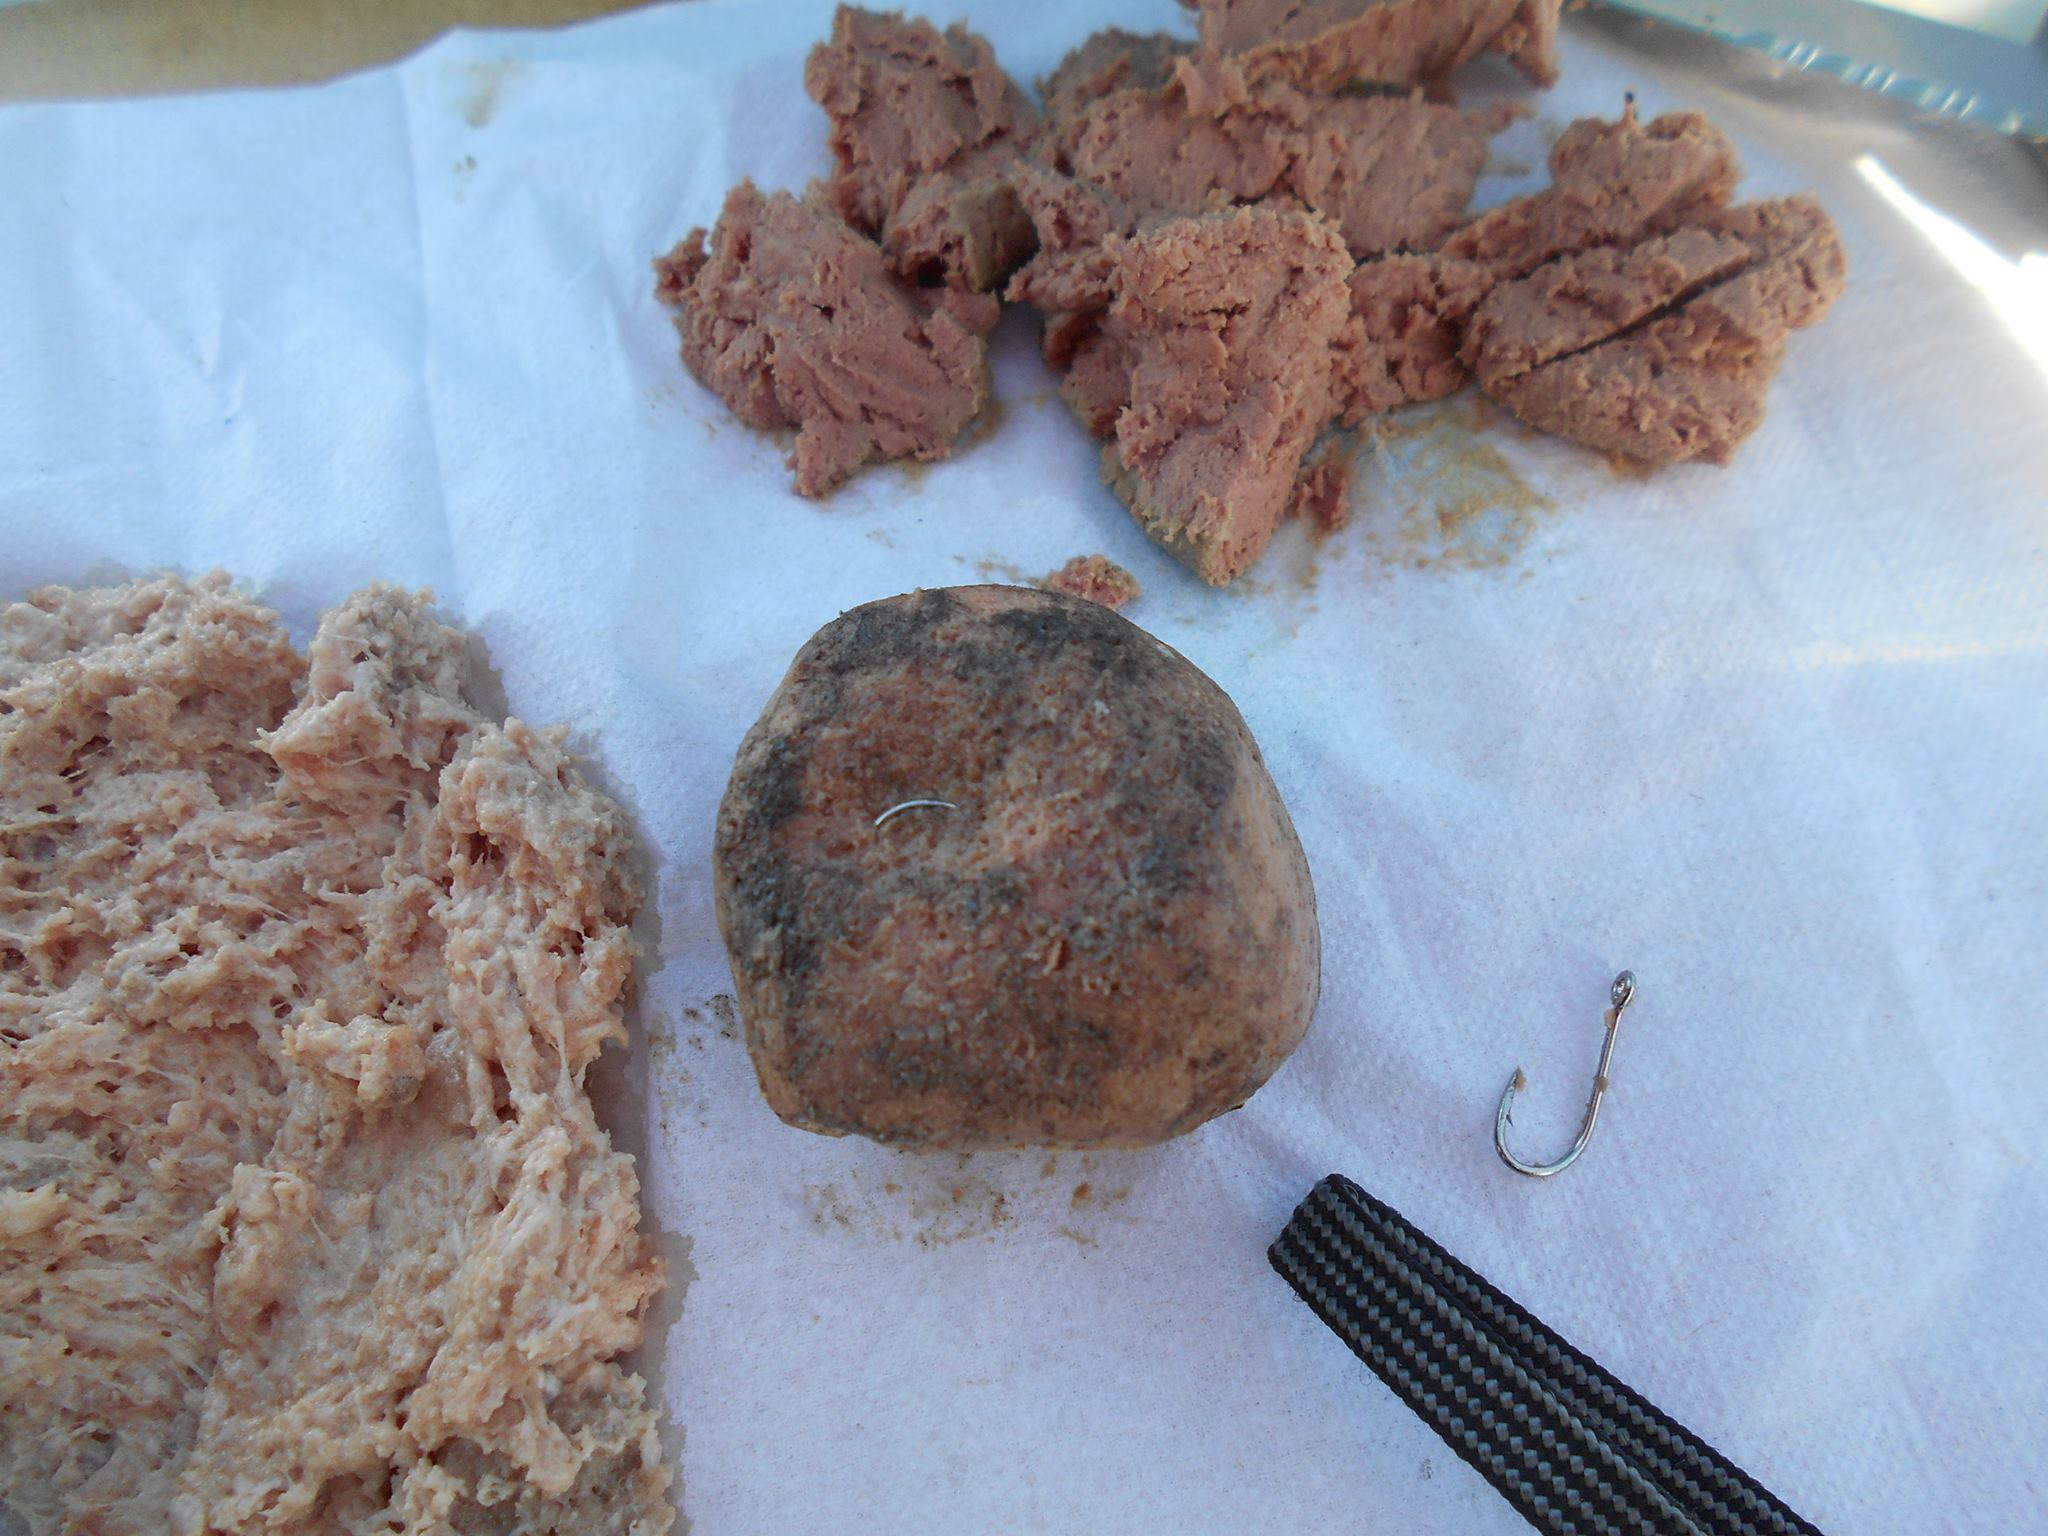 A Volusia County deputy found a meatball with small fish hooks at a local dog park. Photo courtesy the Volusia County Sheriff's Office.{&amp;nbsp;}<p></p>